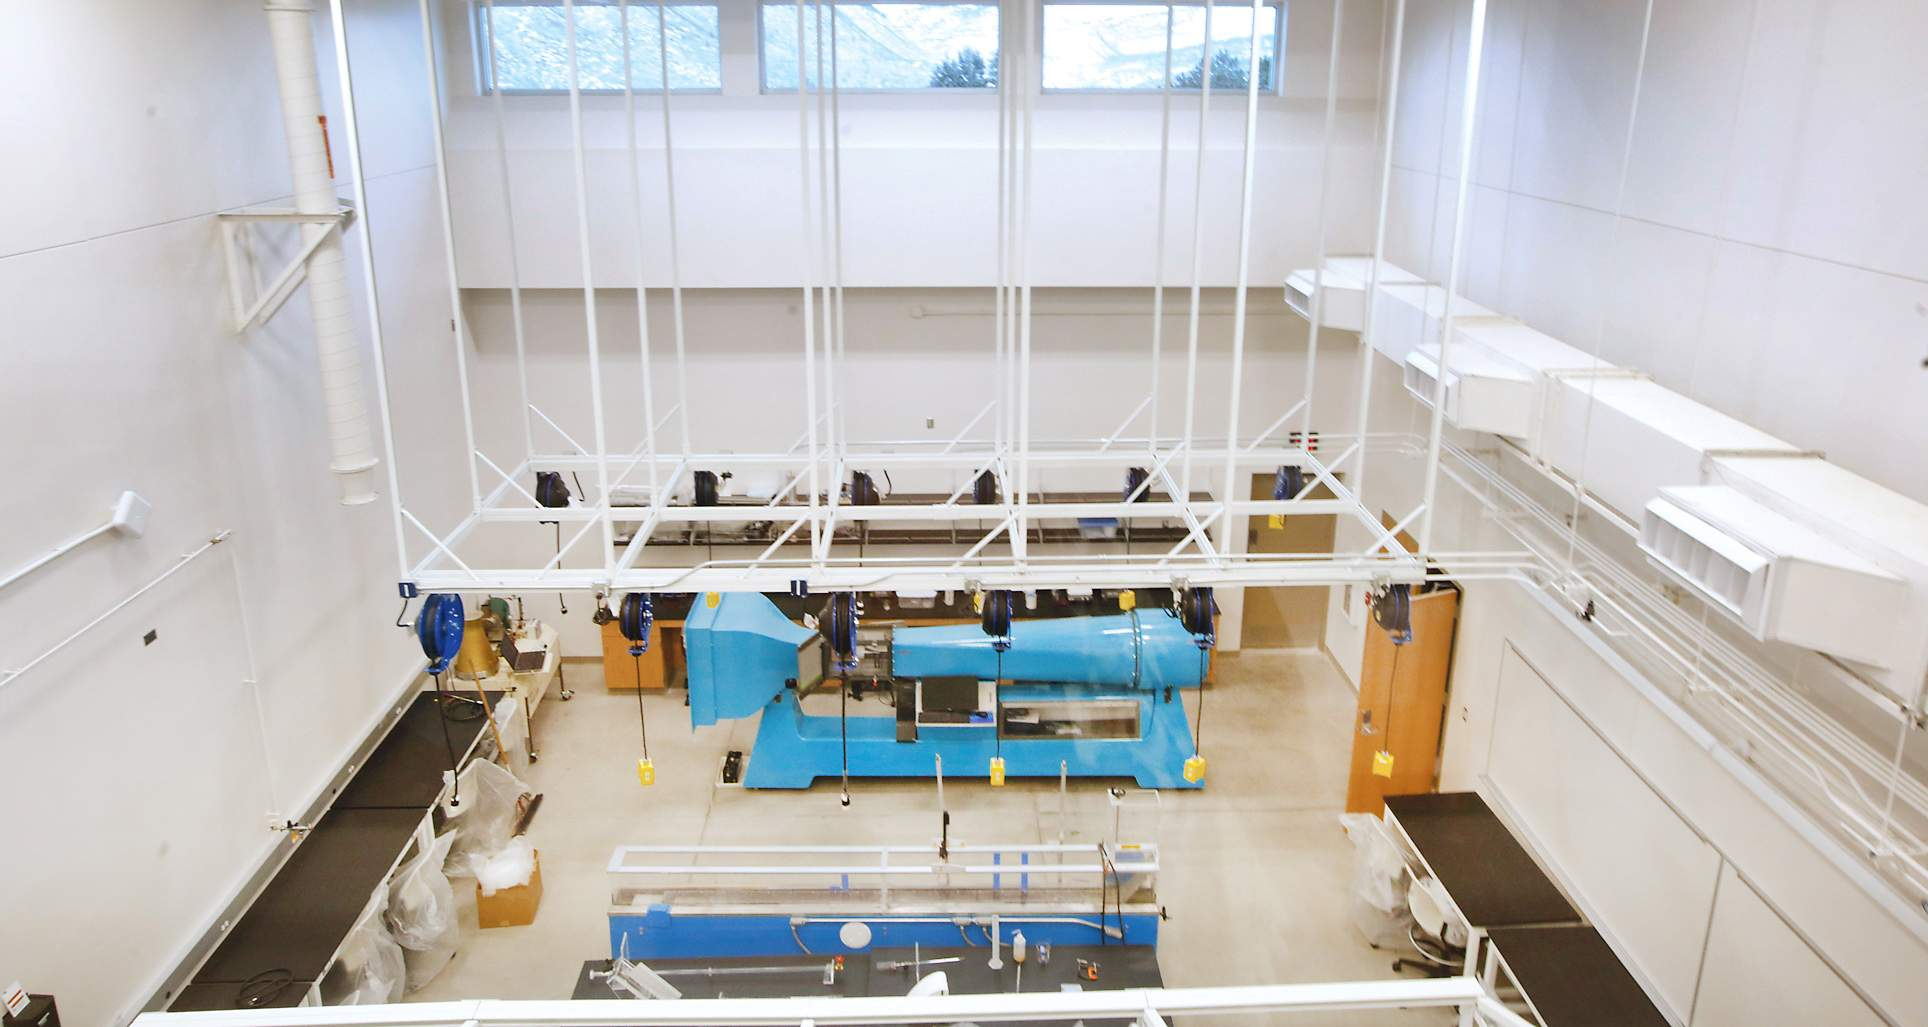 A Birdu0027s Eye View Of The Fluids Laboratory In The New Geosciences, Physics  And Engineering Hall At Fort Lewis College Shows The Wind Tunnel, Rear, ...